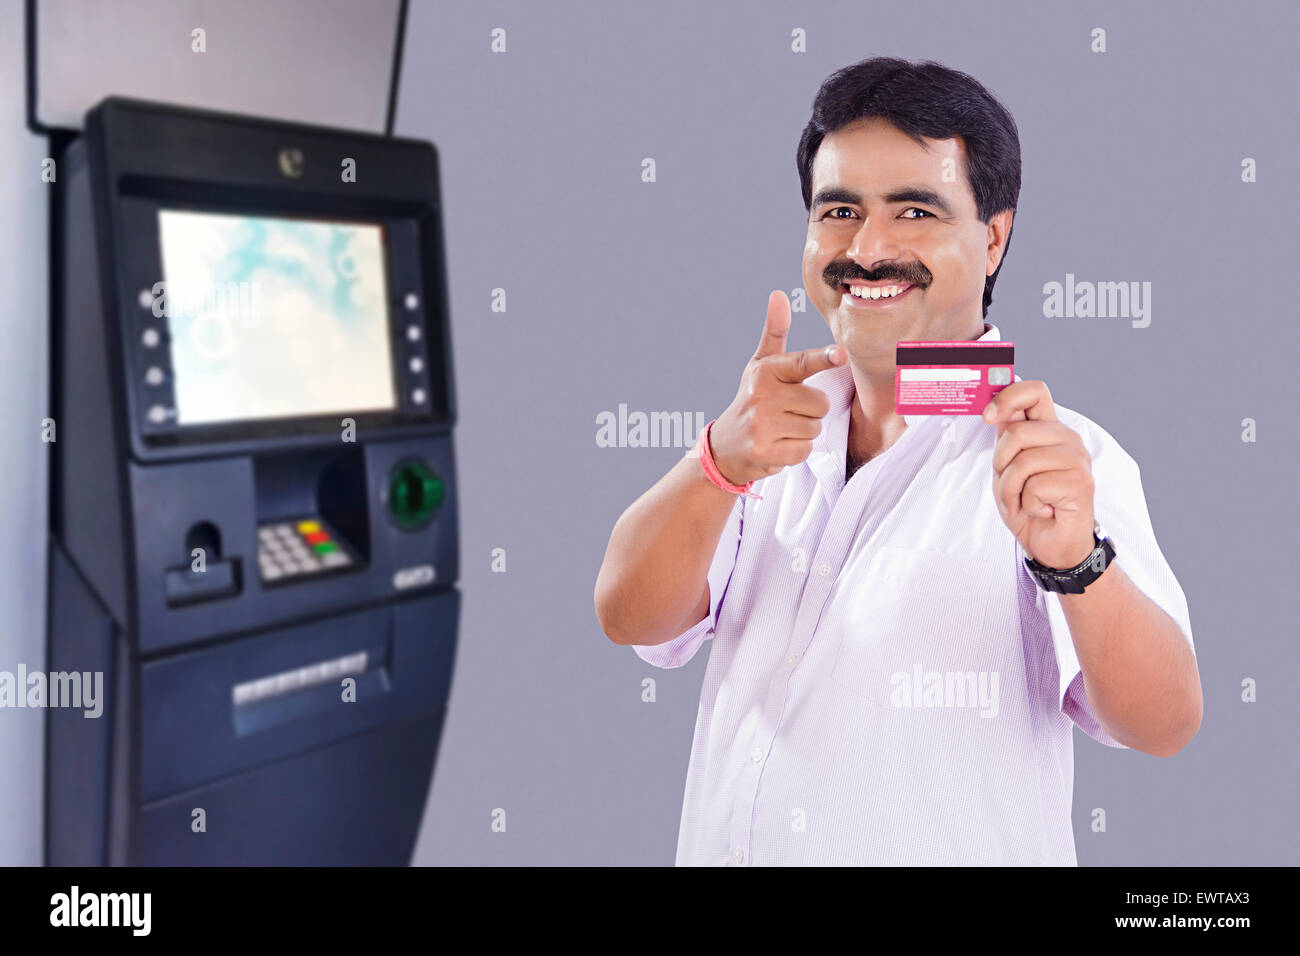 1 indian man atm machinery credit card showing stock photo 1 indian man atm machinery credit card showing reheart Choice Image